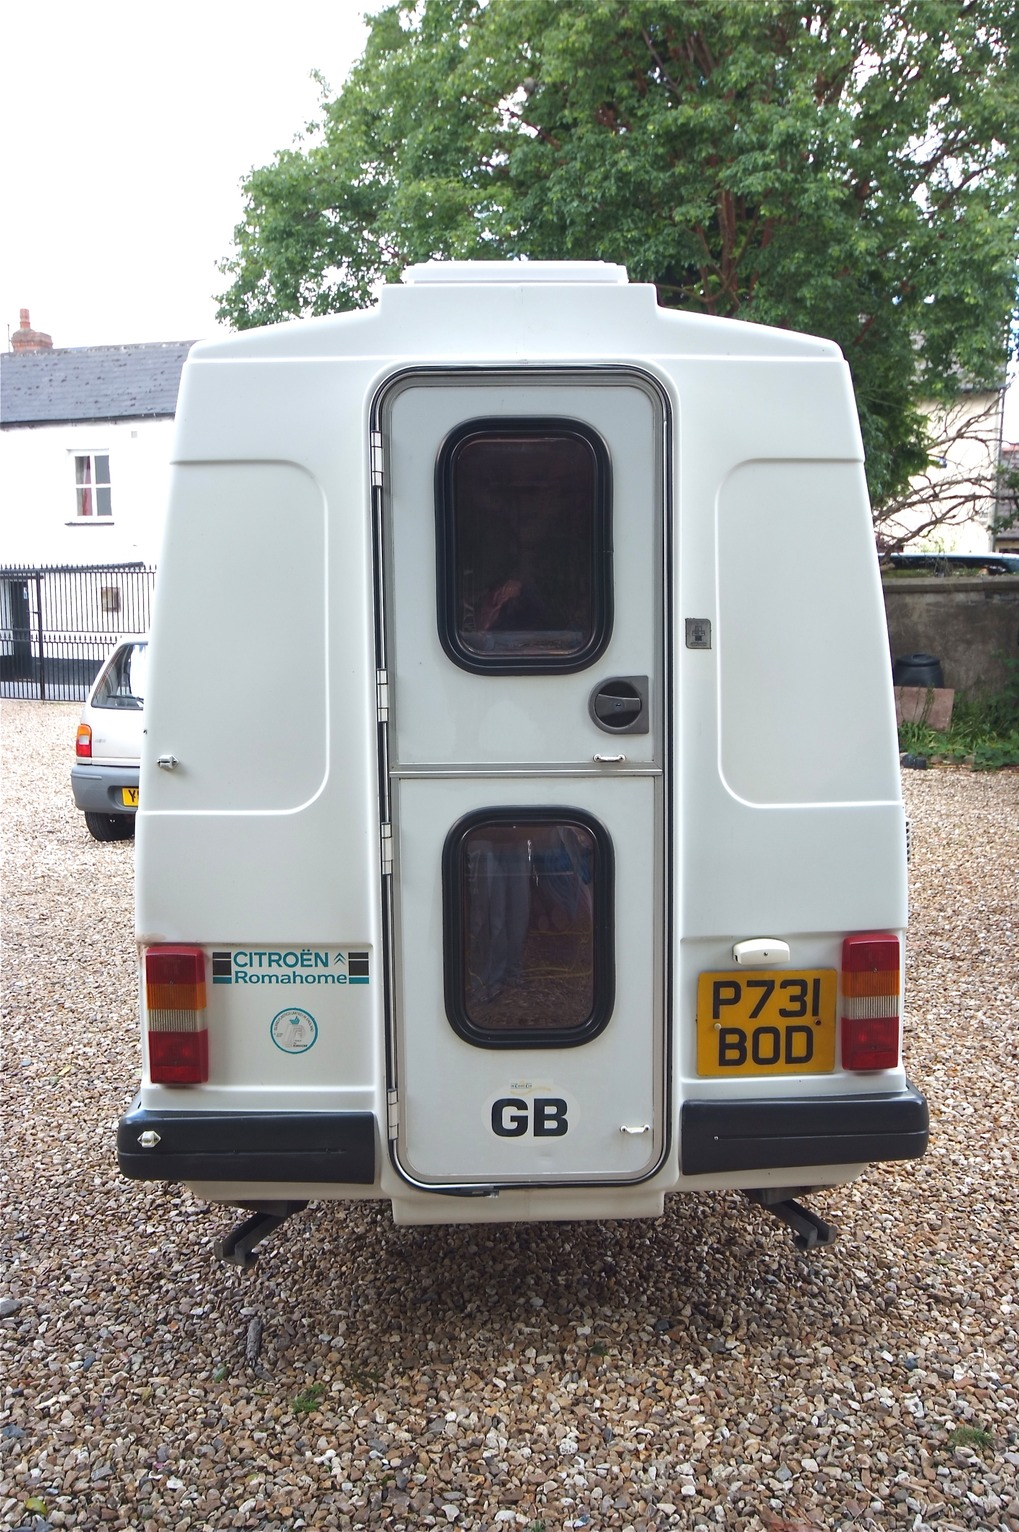 sold 1996 citroen c15 diesel romahome with pas north devon motorhomes 01271 866333. Black Bedroom Furniture Sets. Home Design Ideas